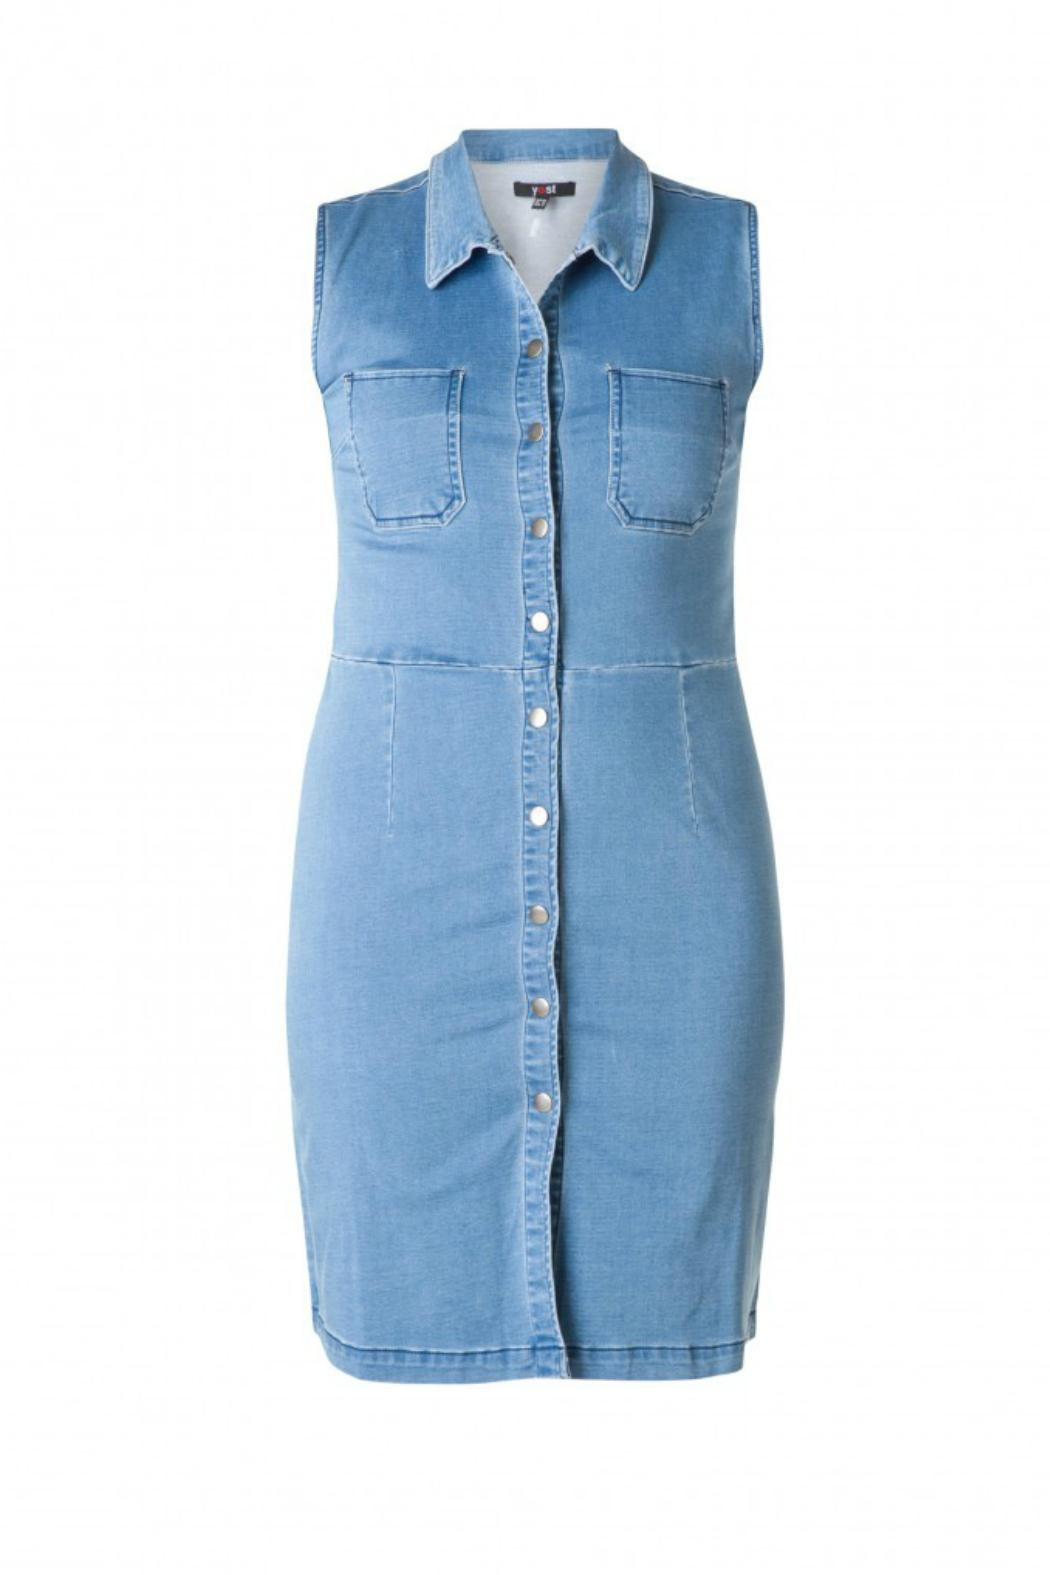 Yest Sleeveless Denim Dress - Main Image